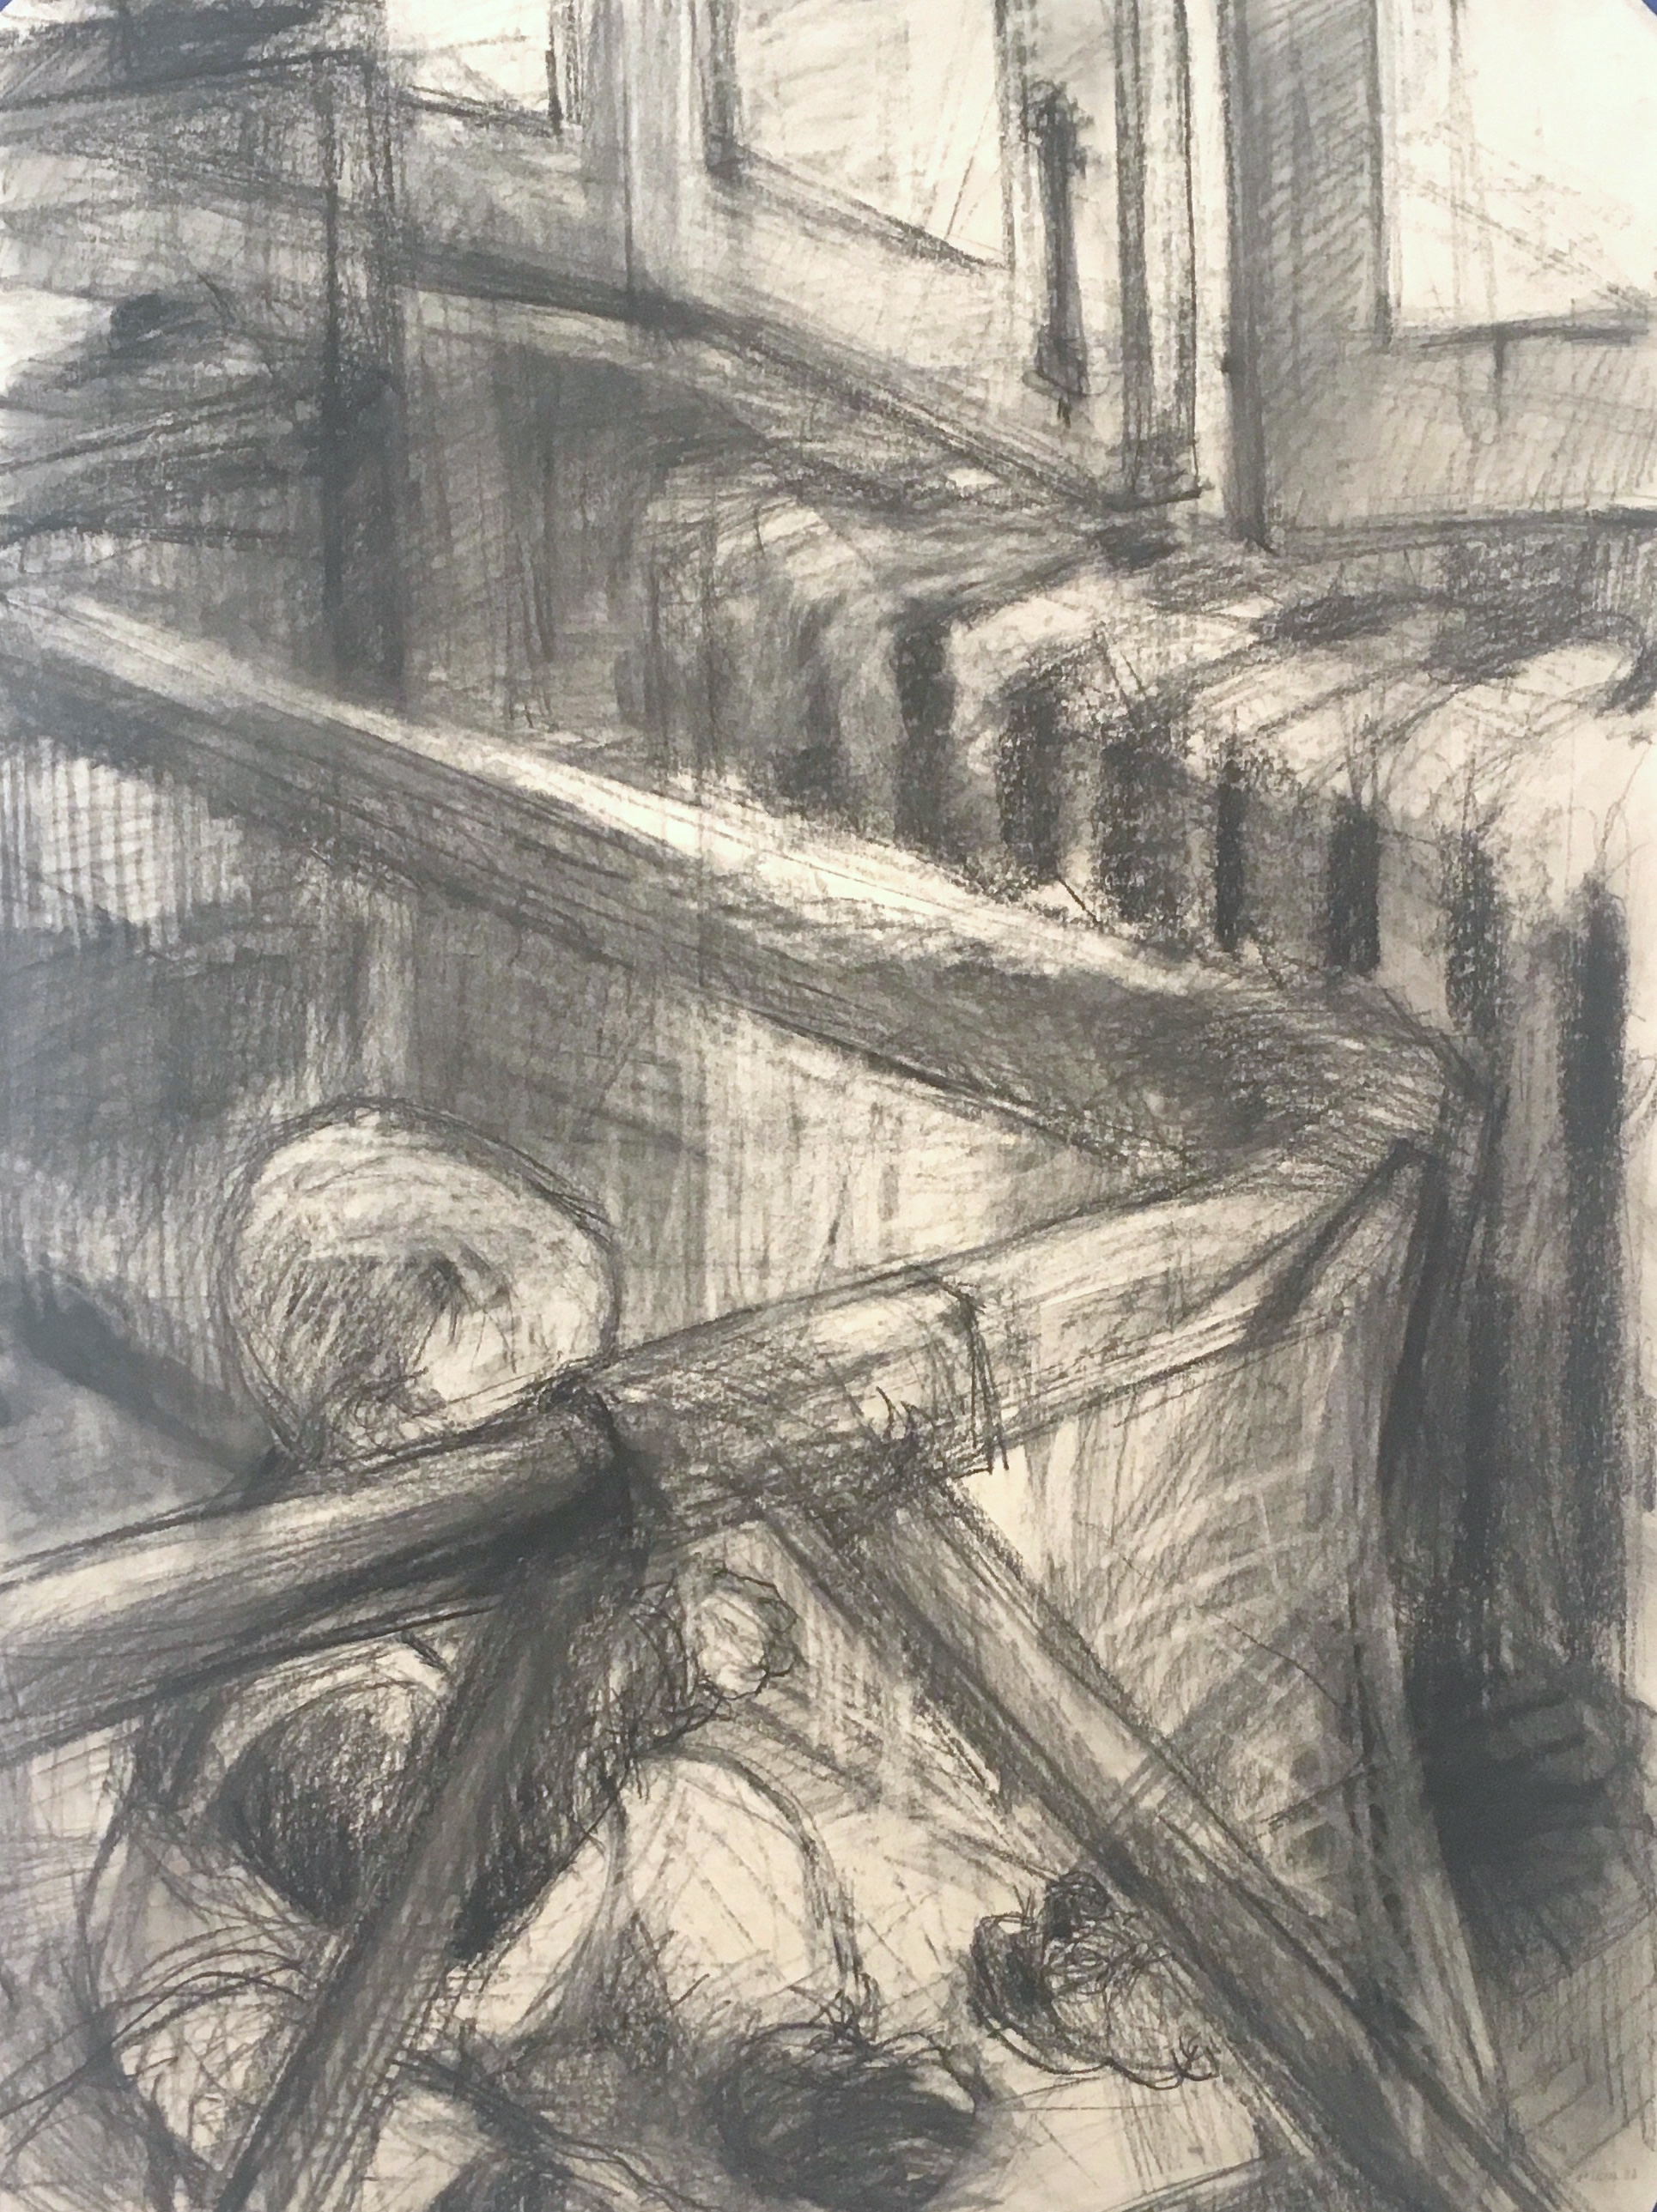 charcoal drawing of baby in playpen by window